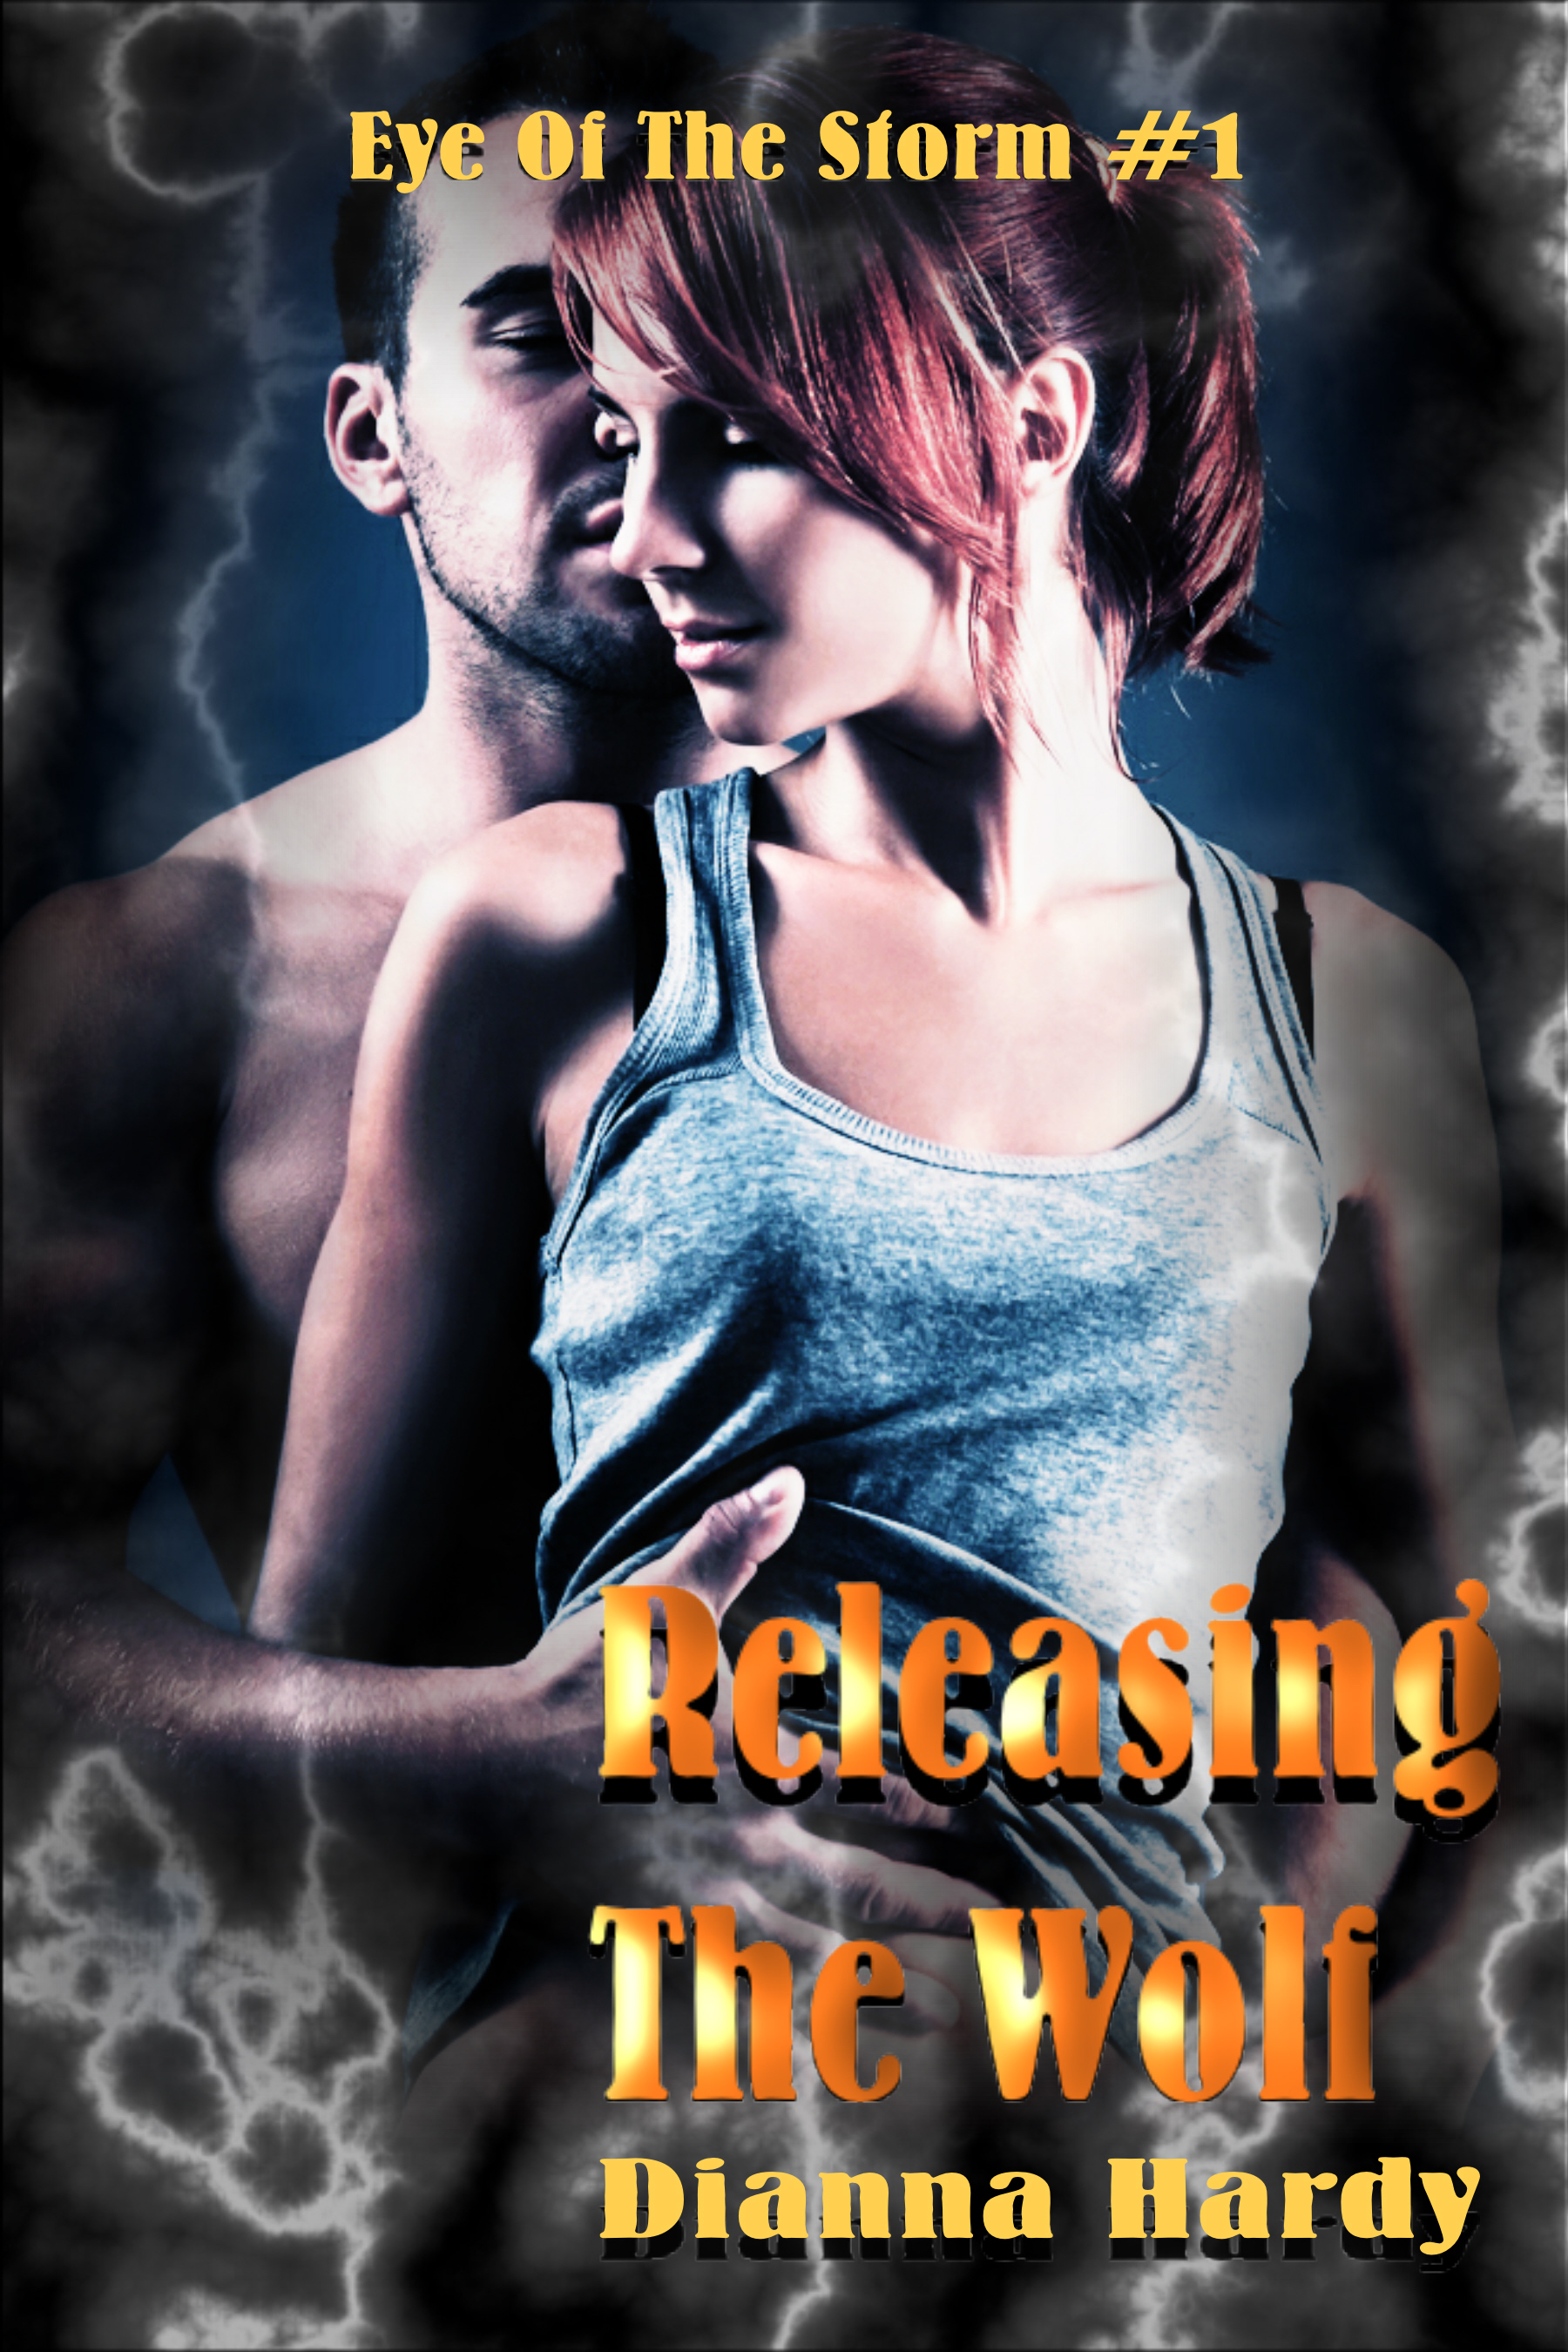 Releasing The Wolf (Eye Of The Storm #1) (sst-ccxcvii)